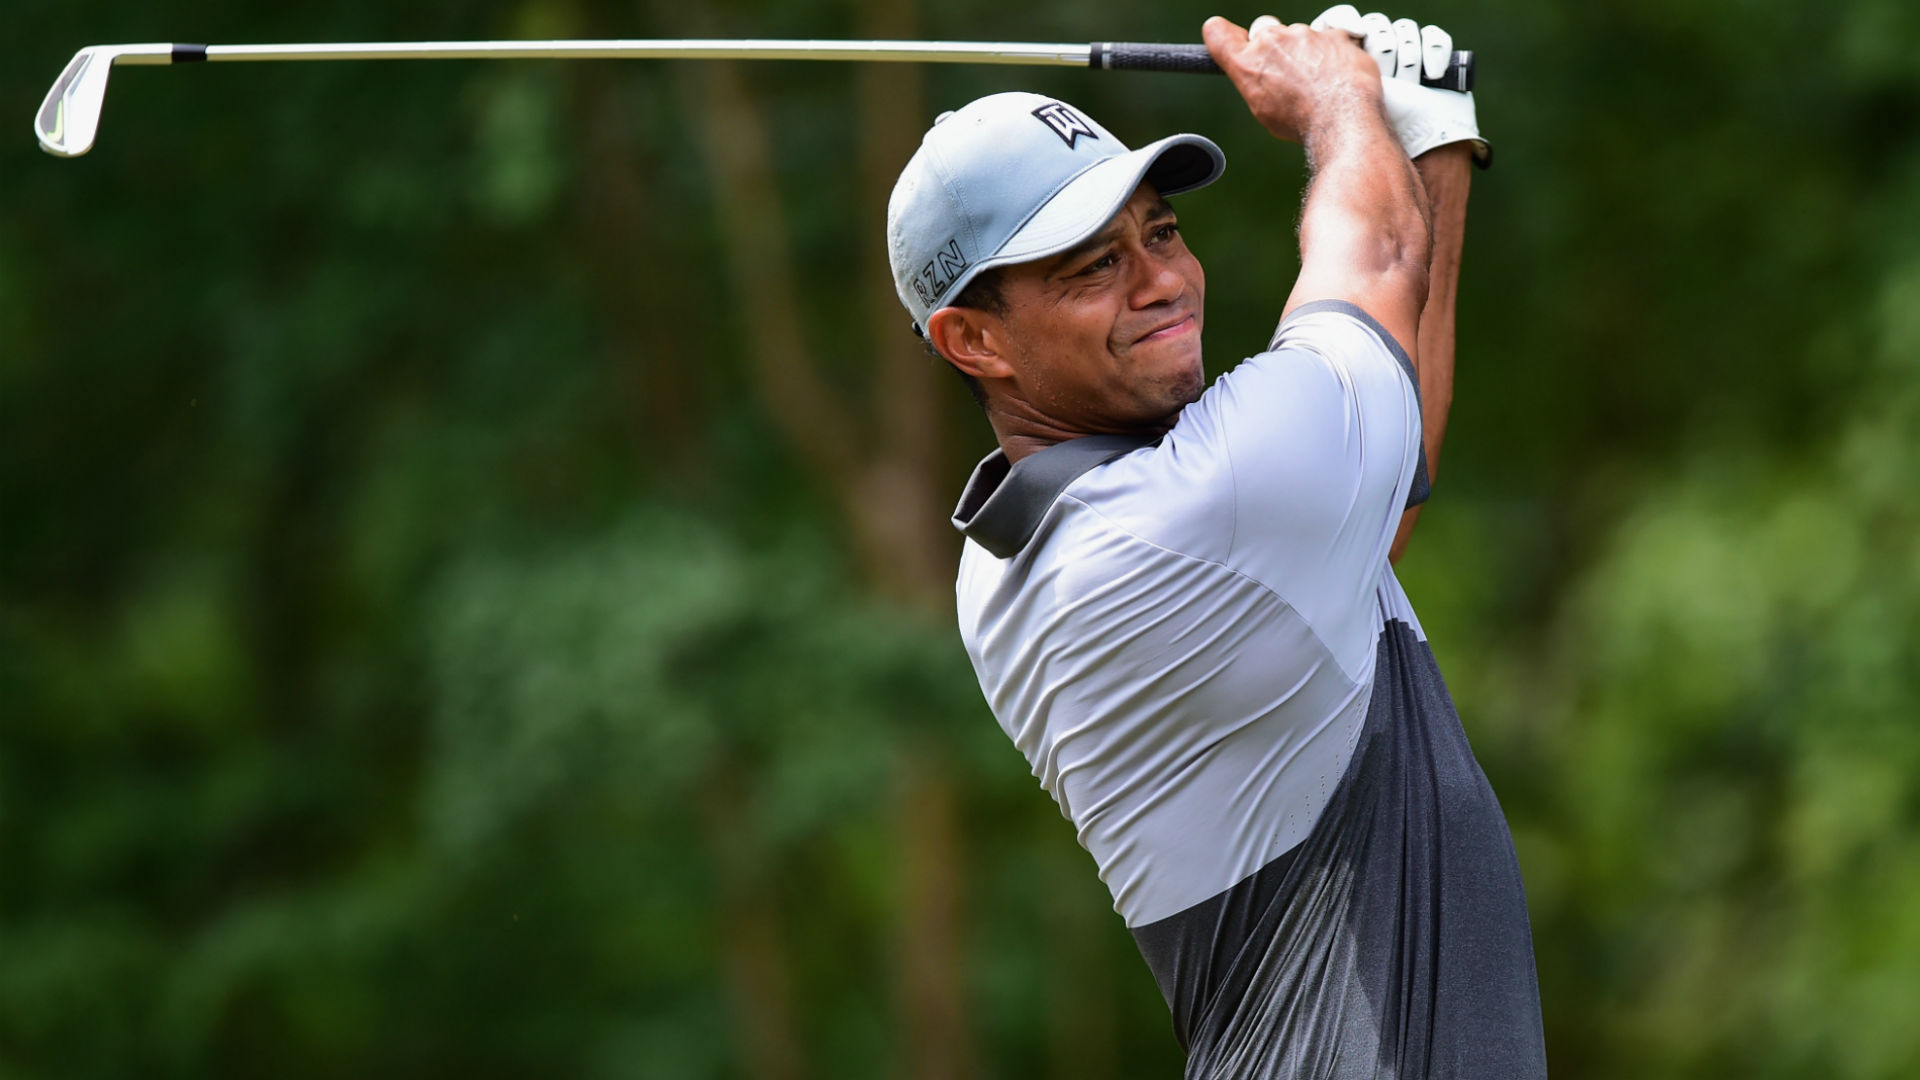 Tiger Woods has registered for 2016 U.S. Open, return date remains ...